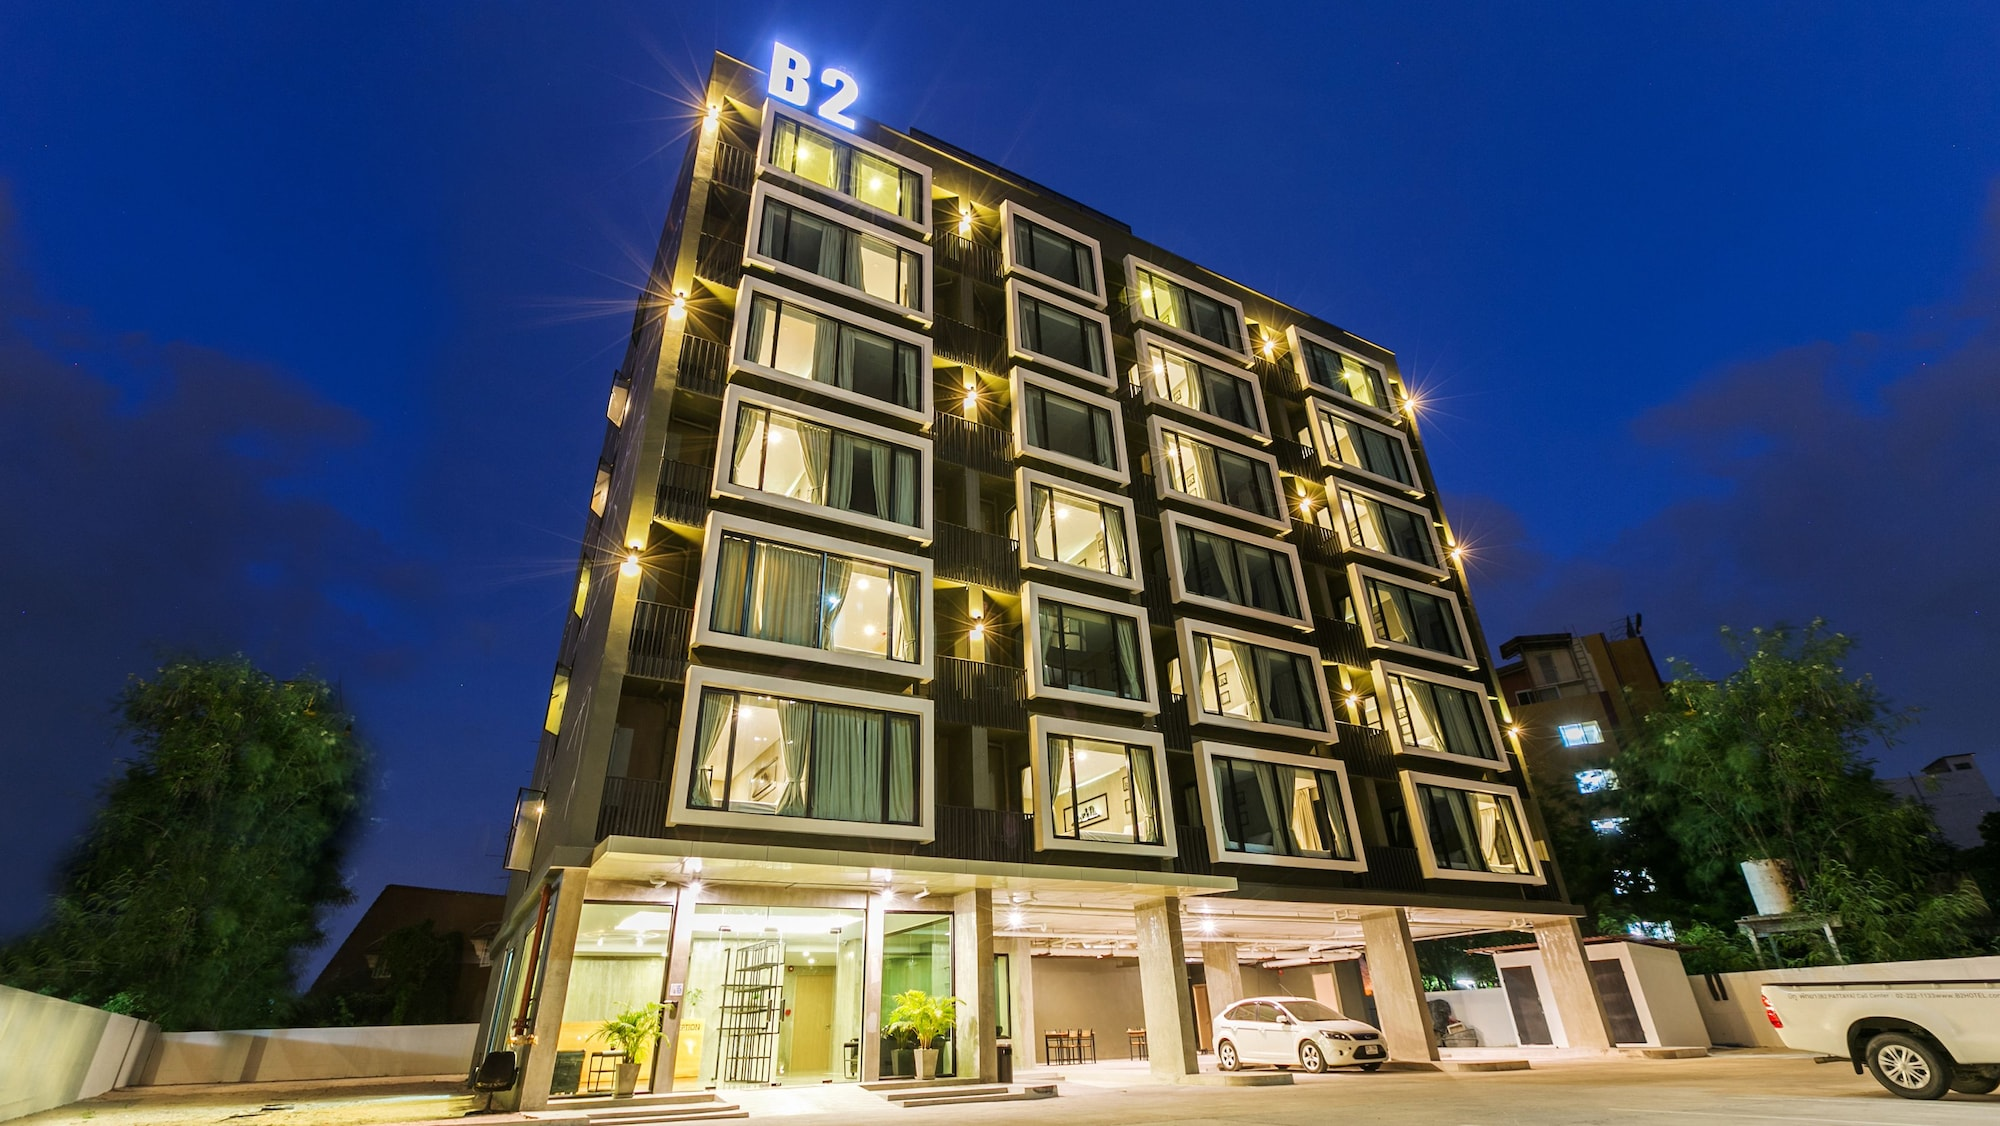 B2 Hotel South Pattaya Premier Hotel, Pattaya